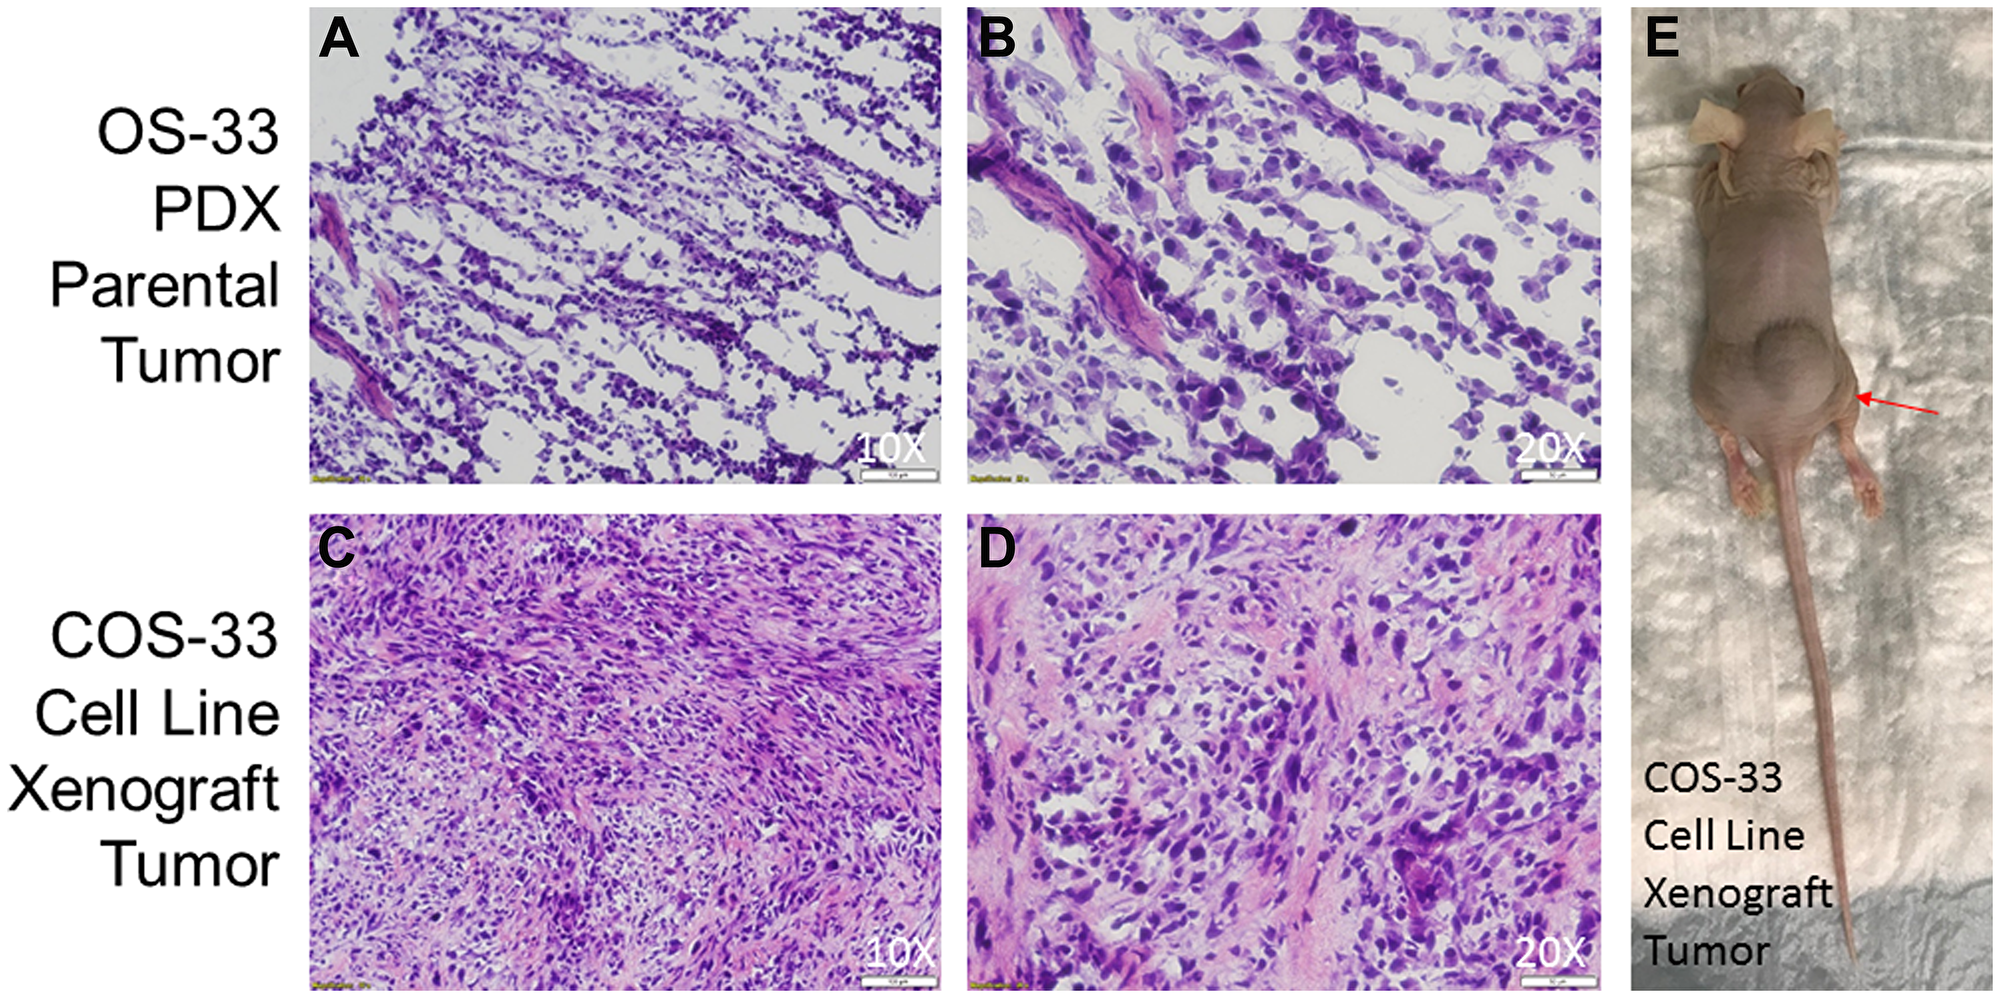 Photographs of histological sections of COS-33 tumors and the xenograft mouse.